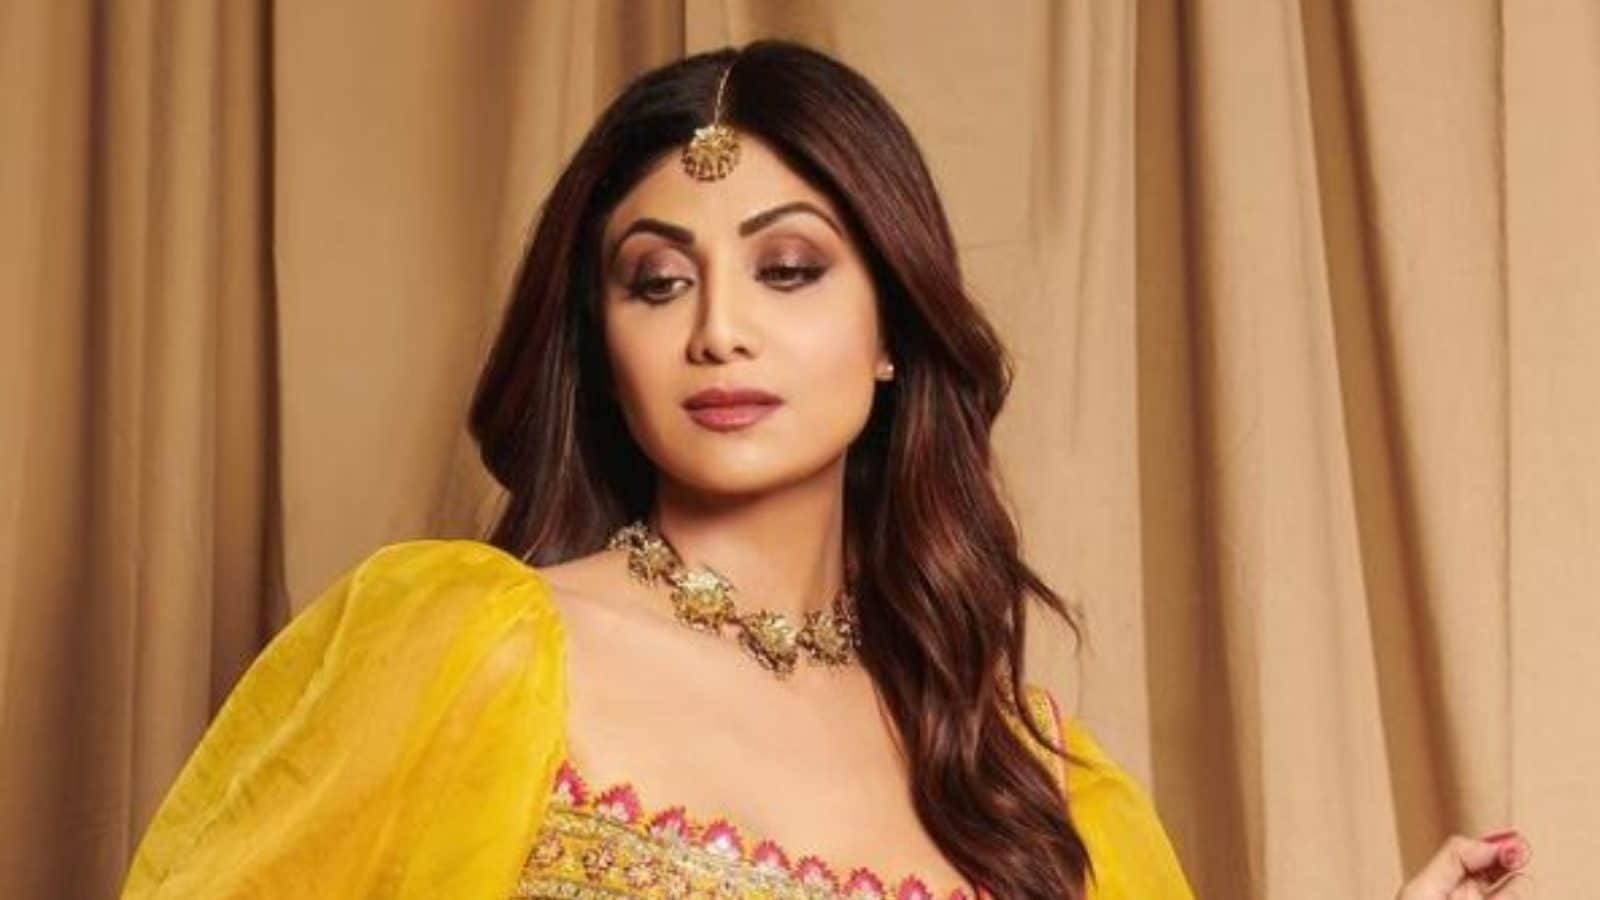 Shilpa Shetty Comes Out of Her Comfort Zone, Performs Tribal Squats